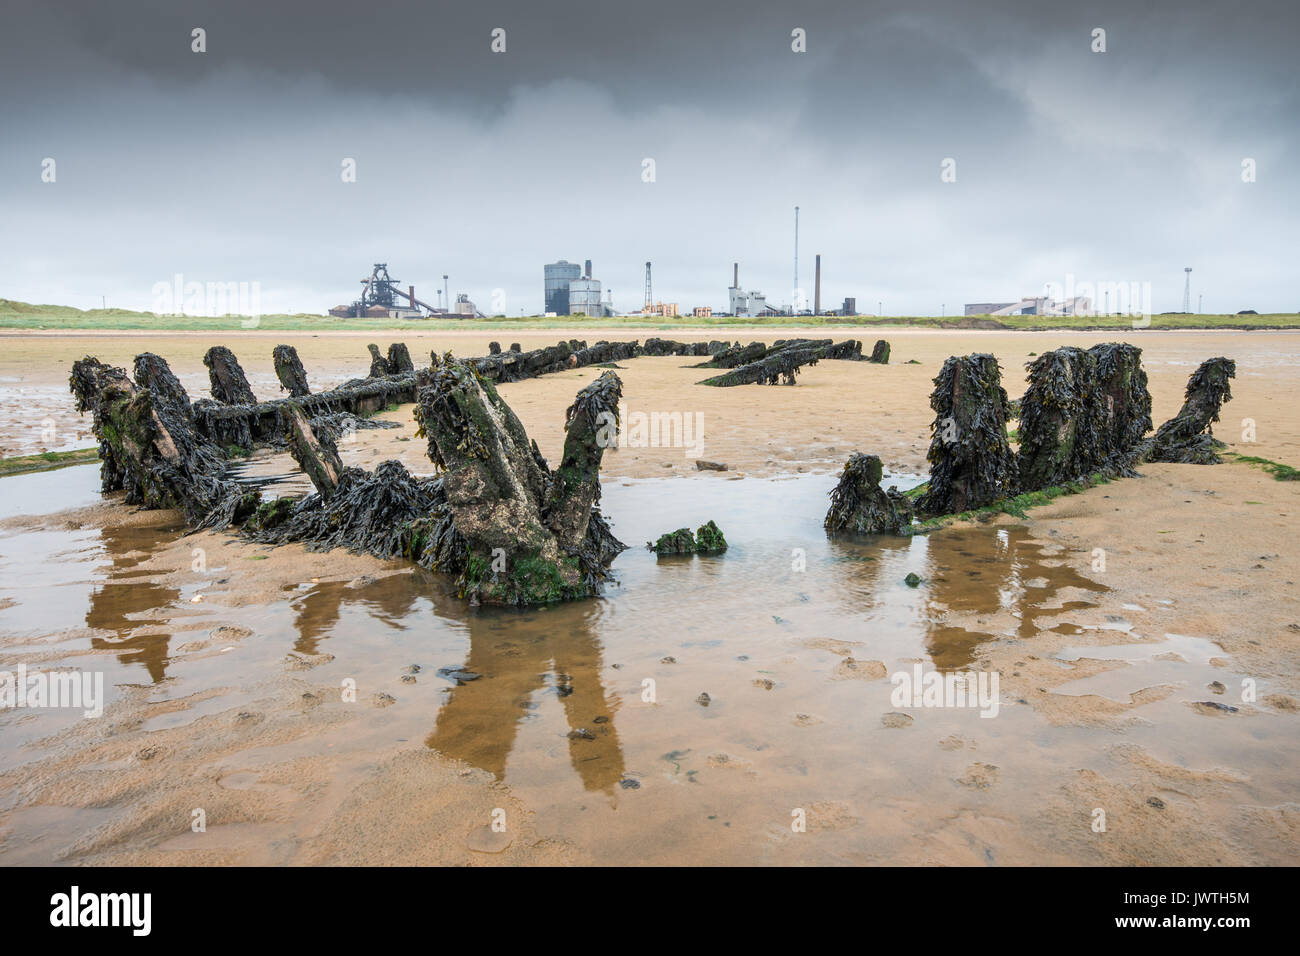 Shipwreck on Bran Sands beach, South Gare, Redcar, Cleveland - Stock Image